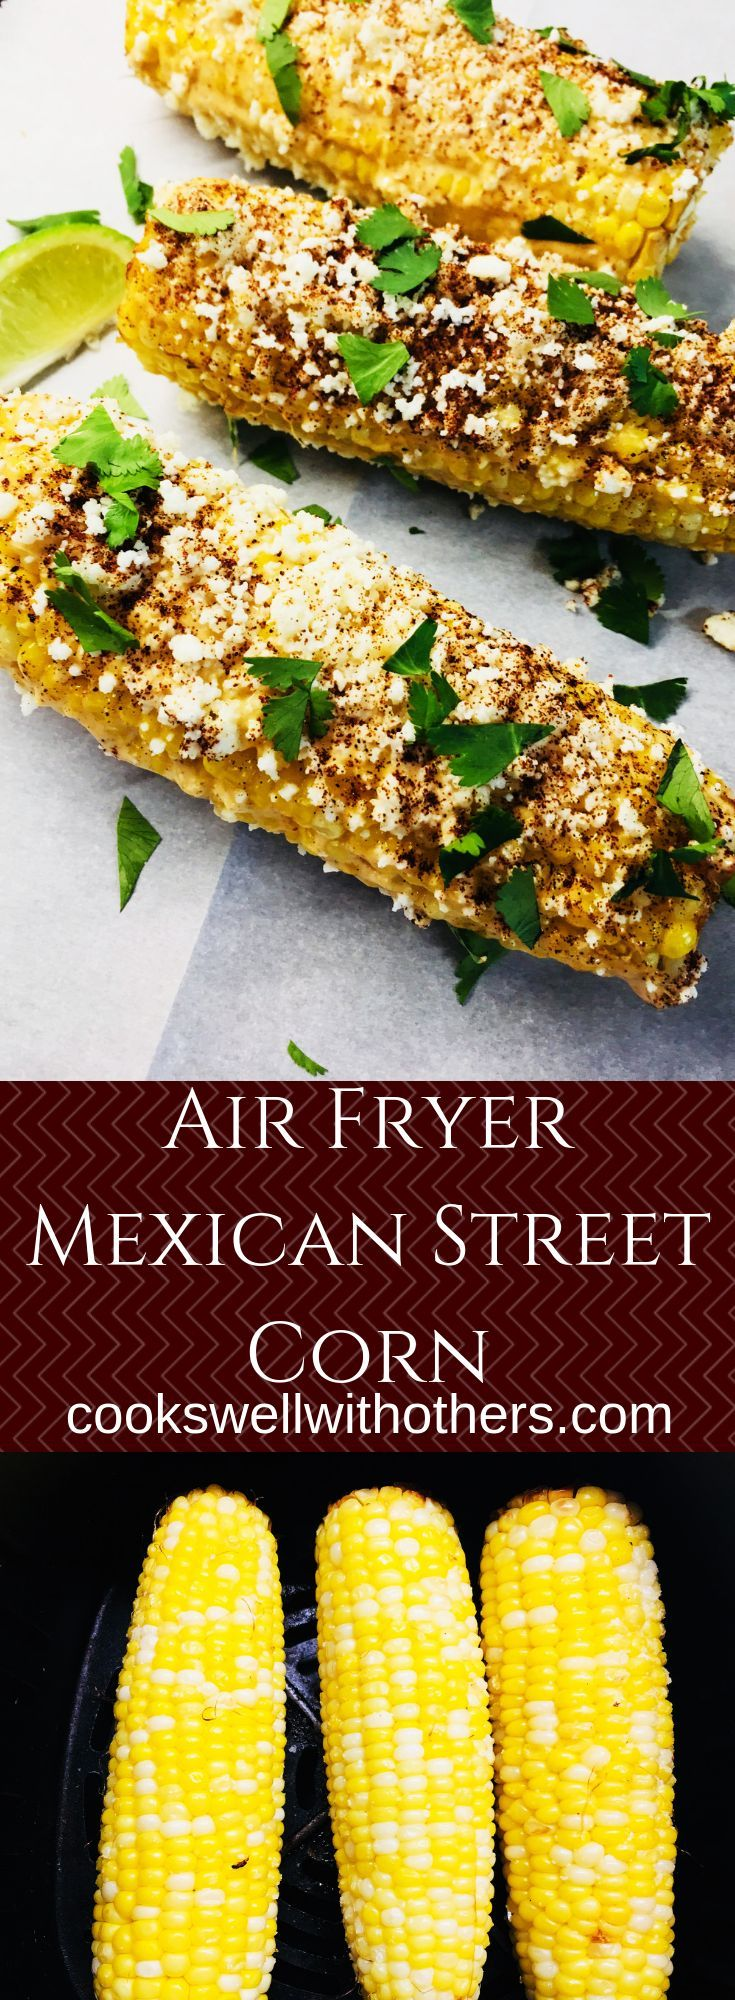 Air Fryer Mexican Street Corn #mexicanstreetcorn